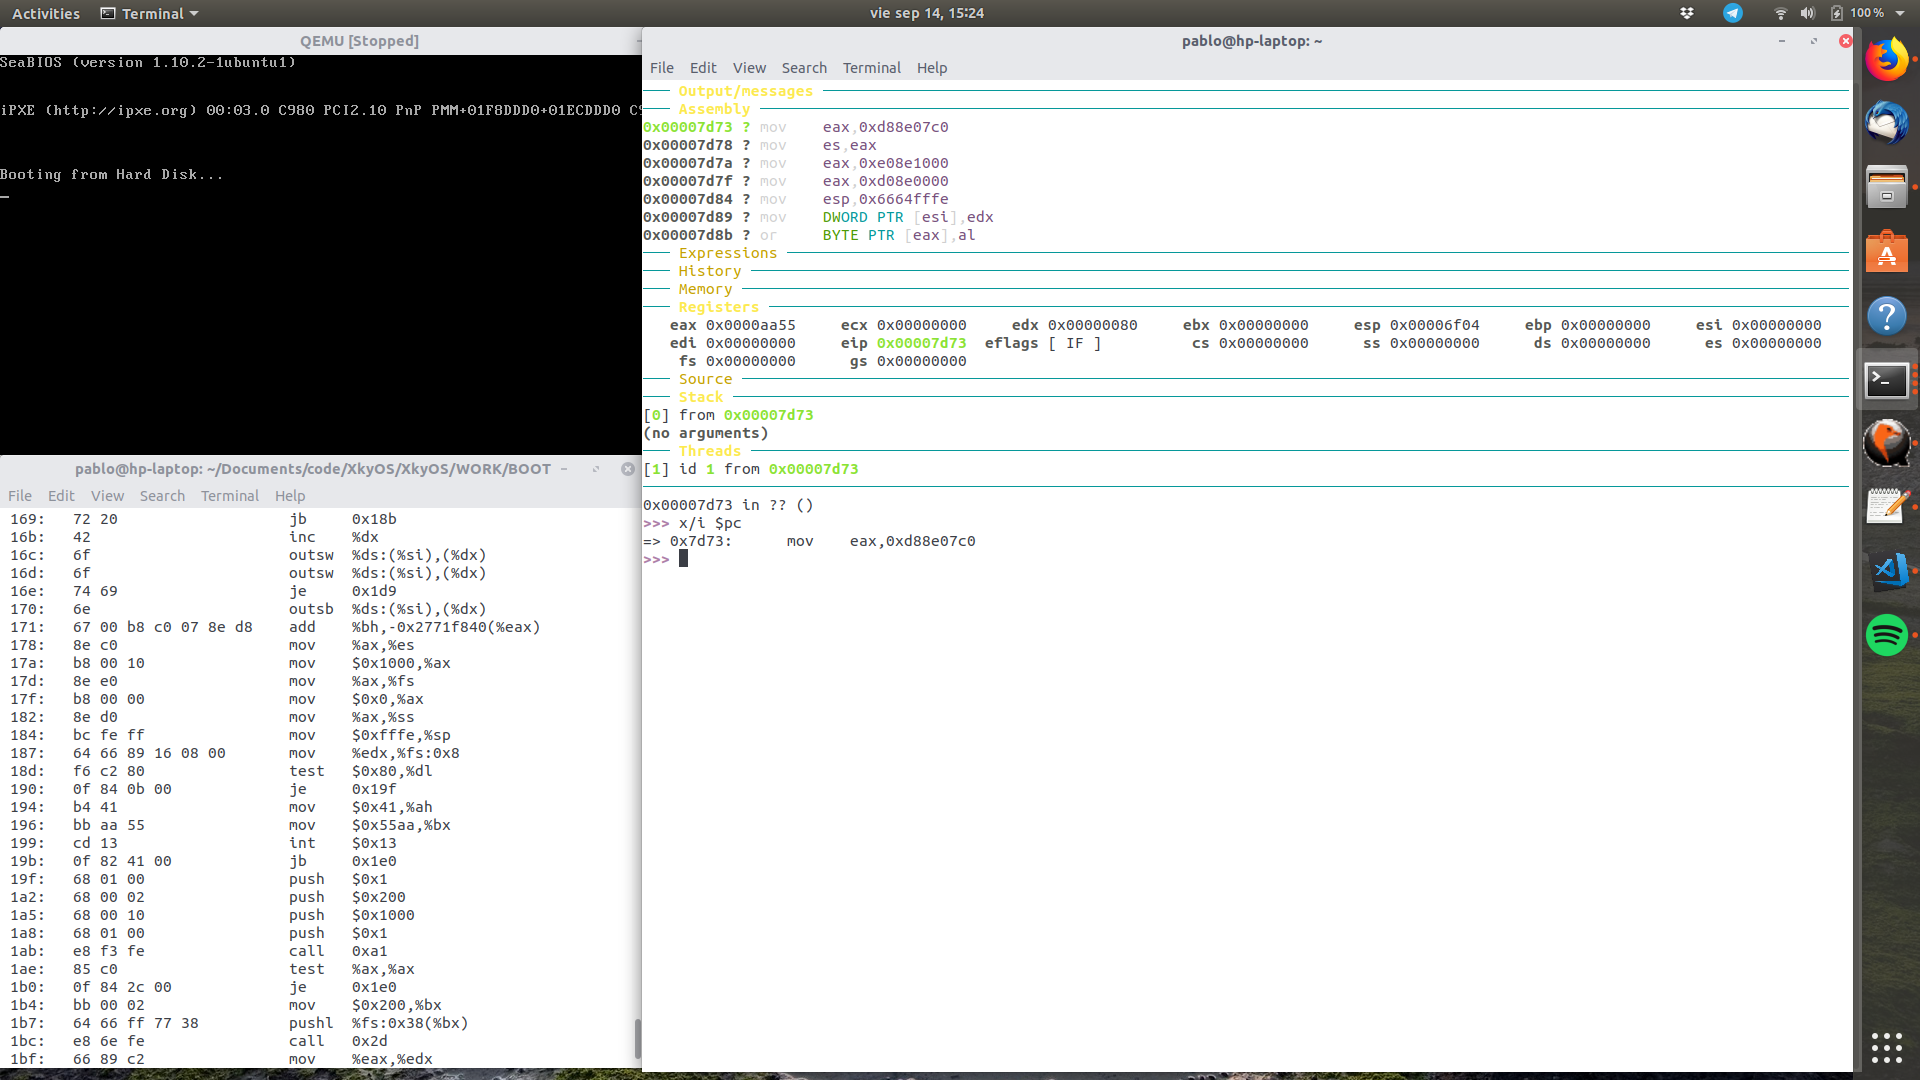 Debugging a MBR with GDB